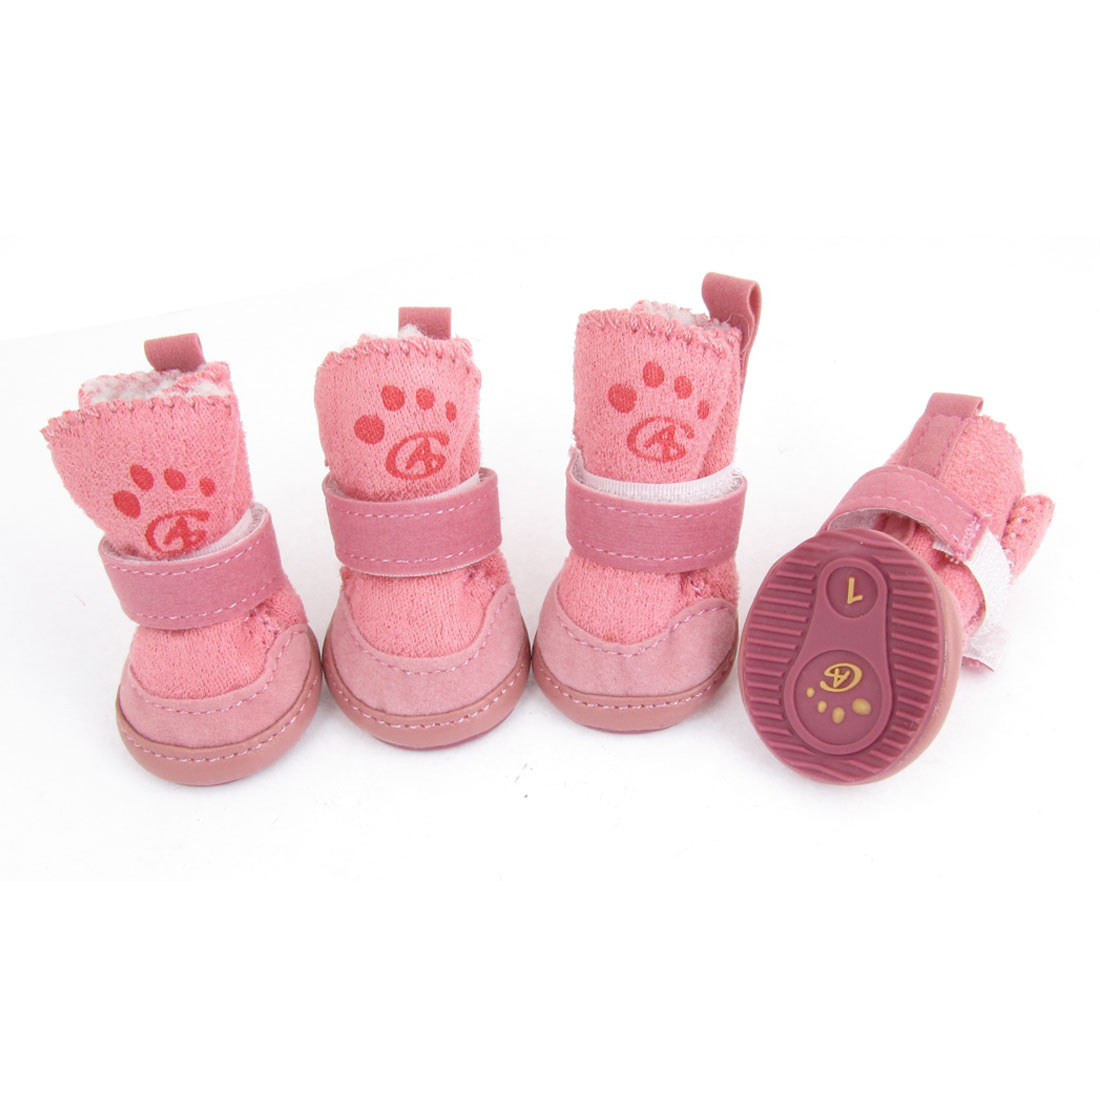 Size 1 Nonslip Sole Doggy Dog Snow Boots Shape Shoes Pink 4 Pcs